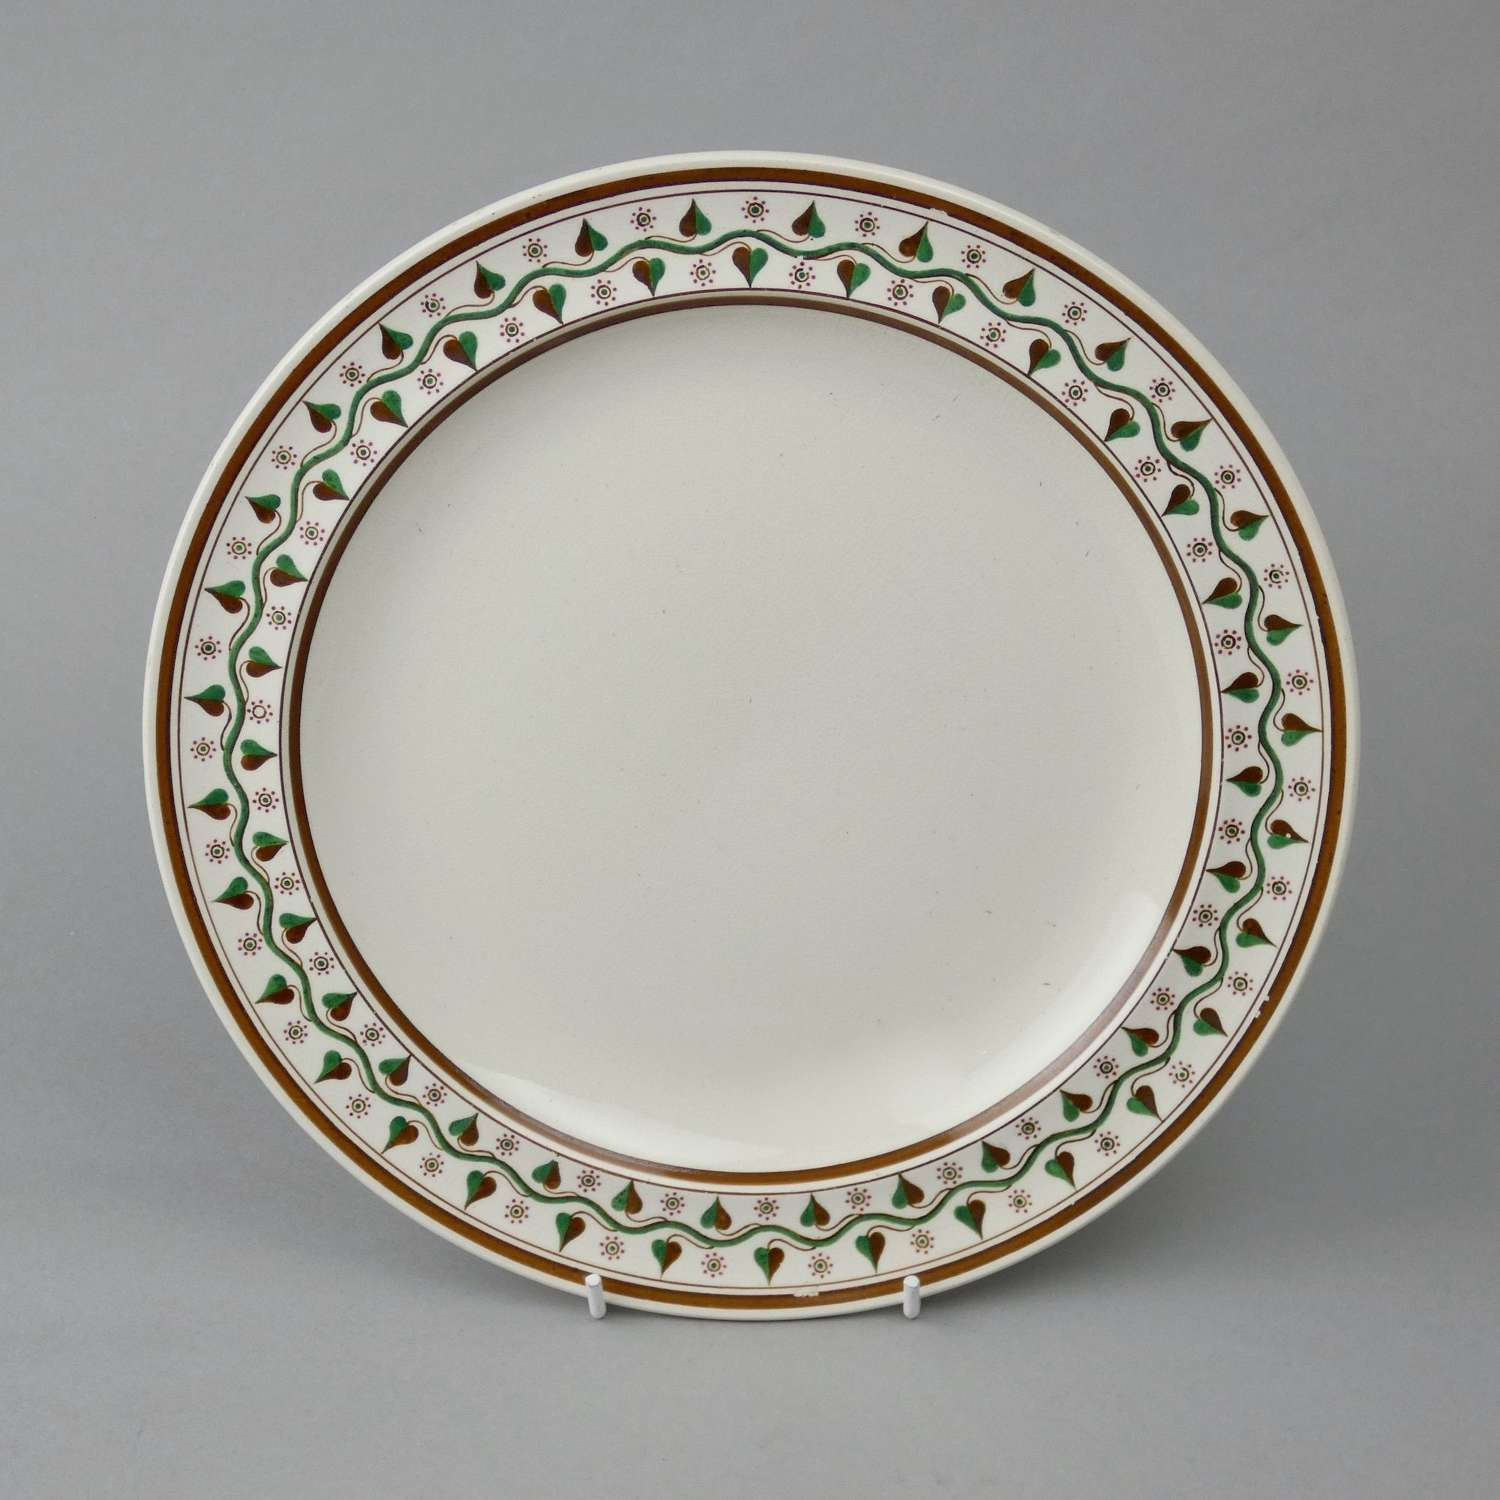 Wedgwood plate with painted border